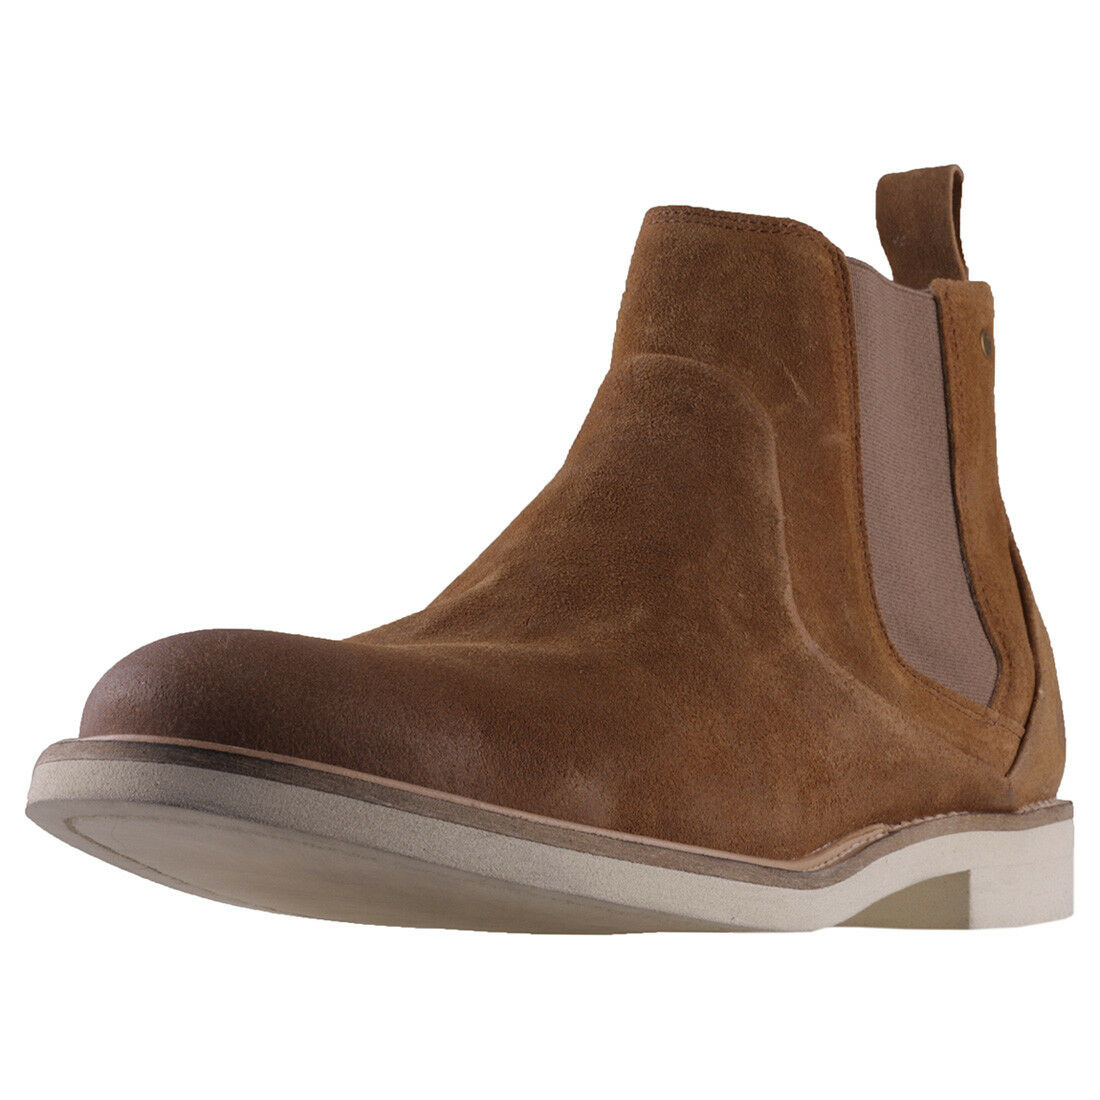 Sneaky Steve Shinner Mens Whiskey Suede Chelsea Boots - 41 EU